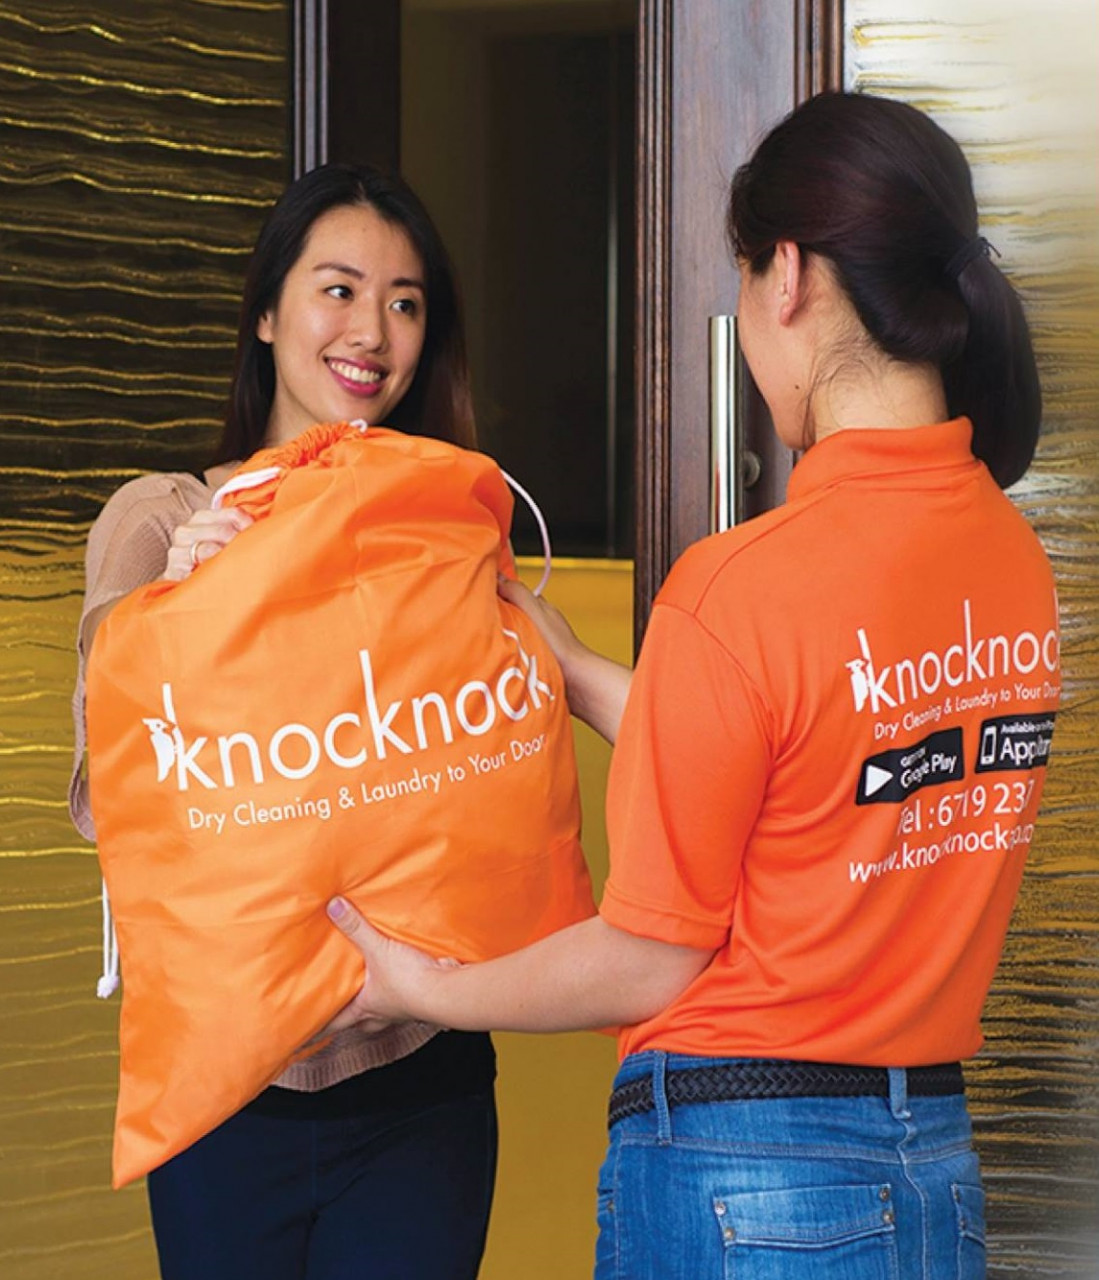 laundry services free home delivery pick up knock knock